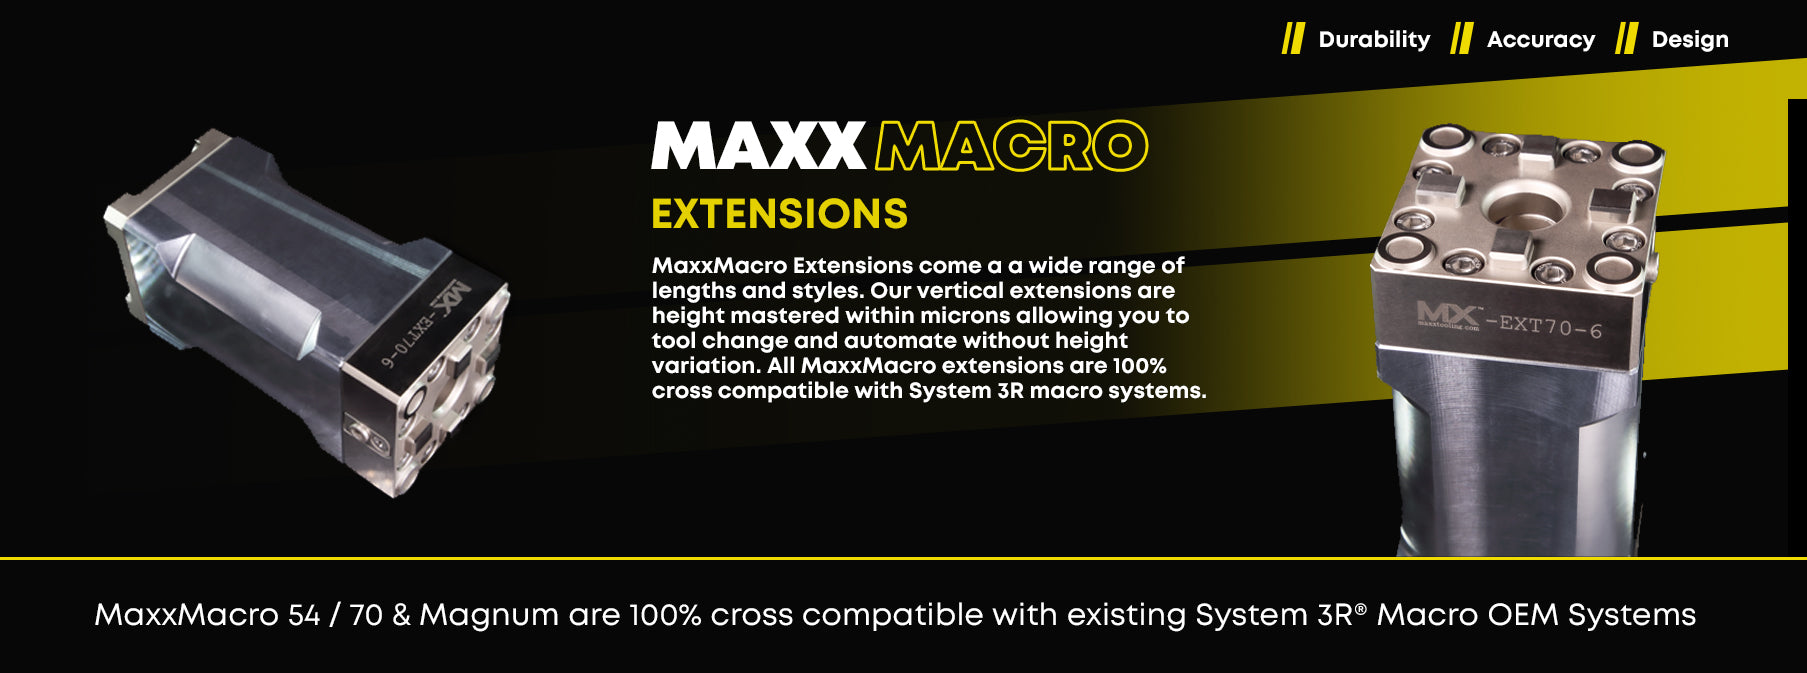 MaxxMacro Extension